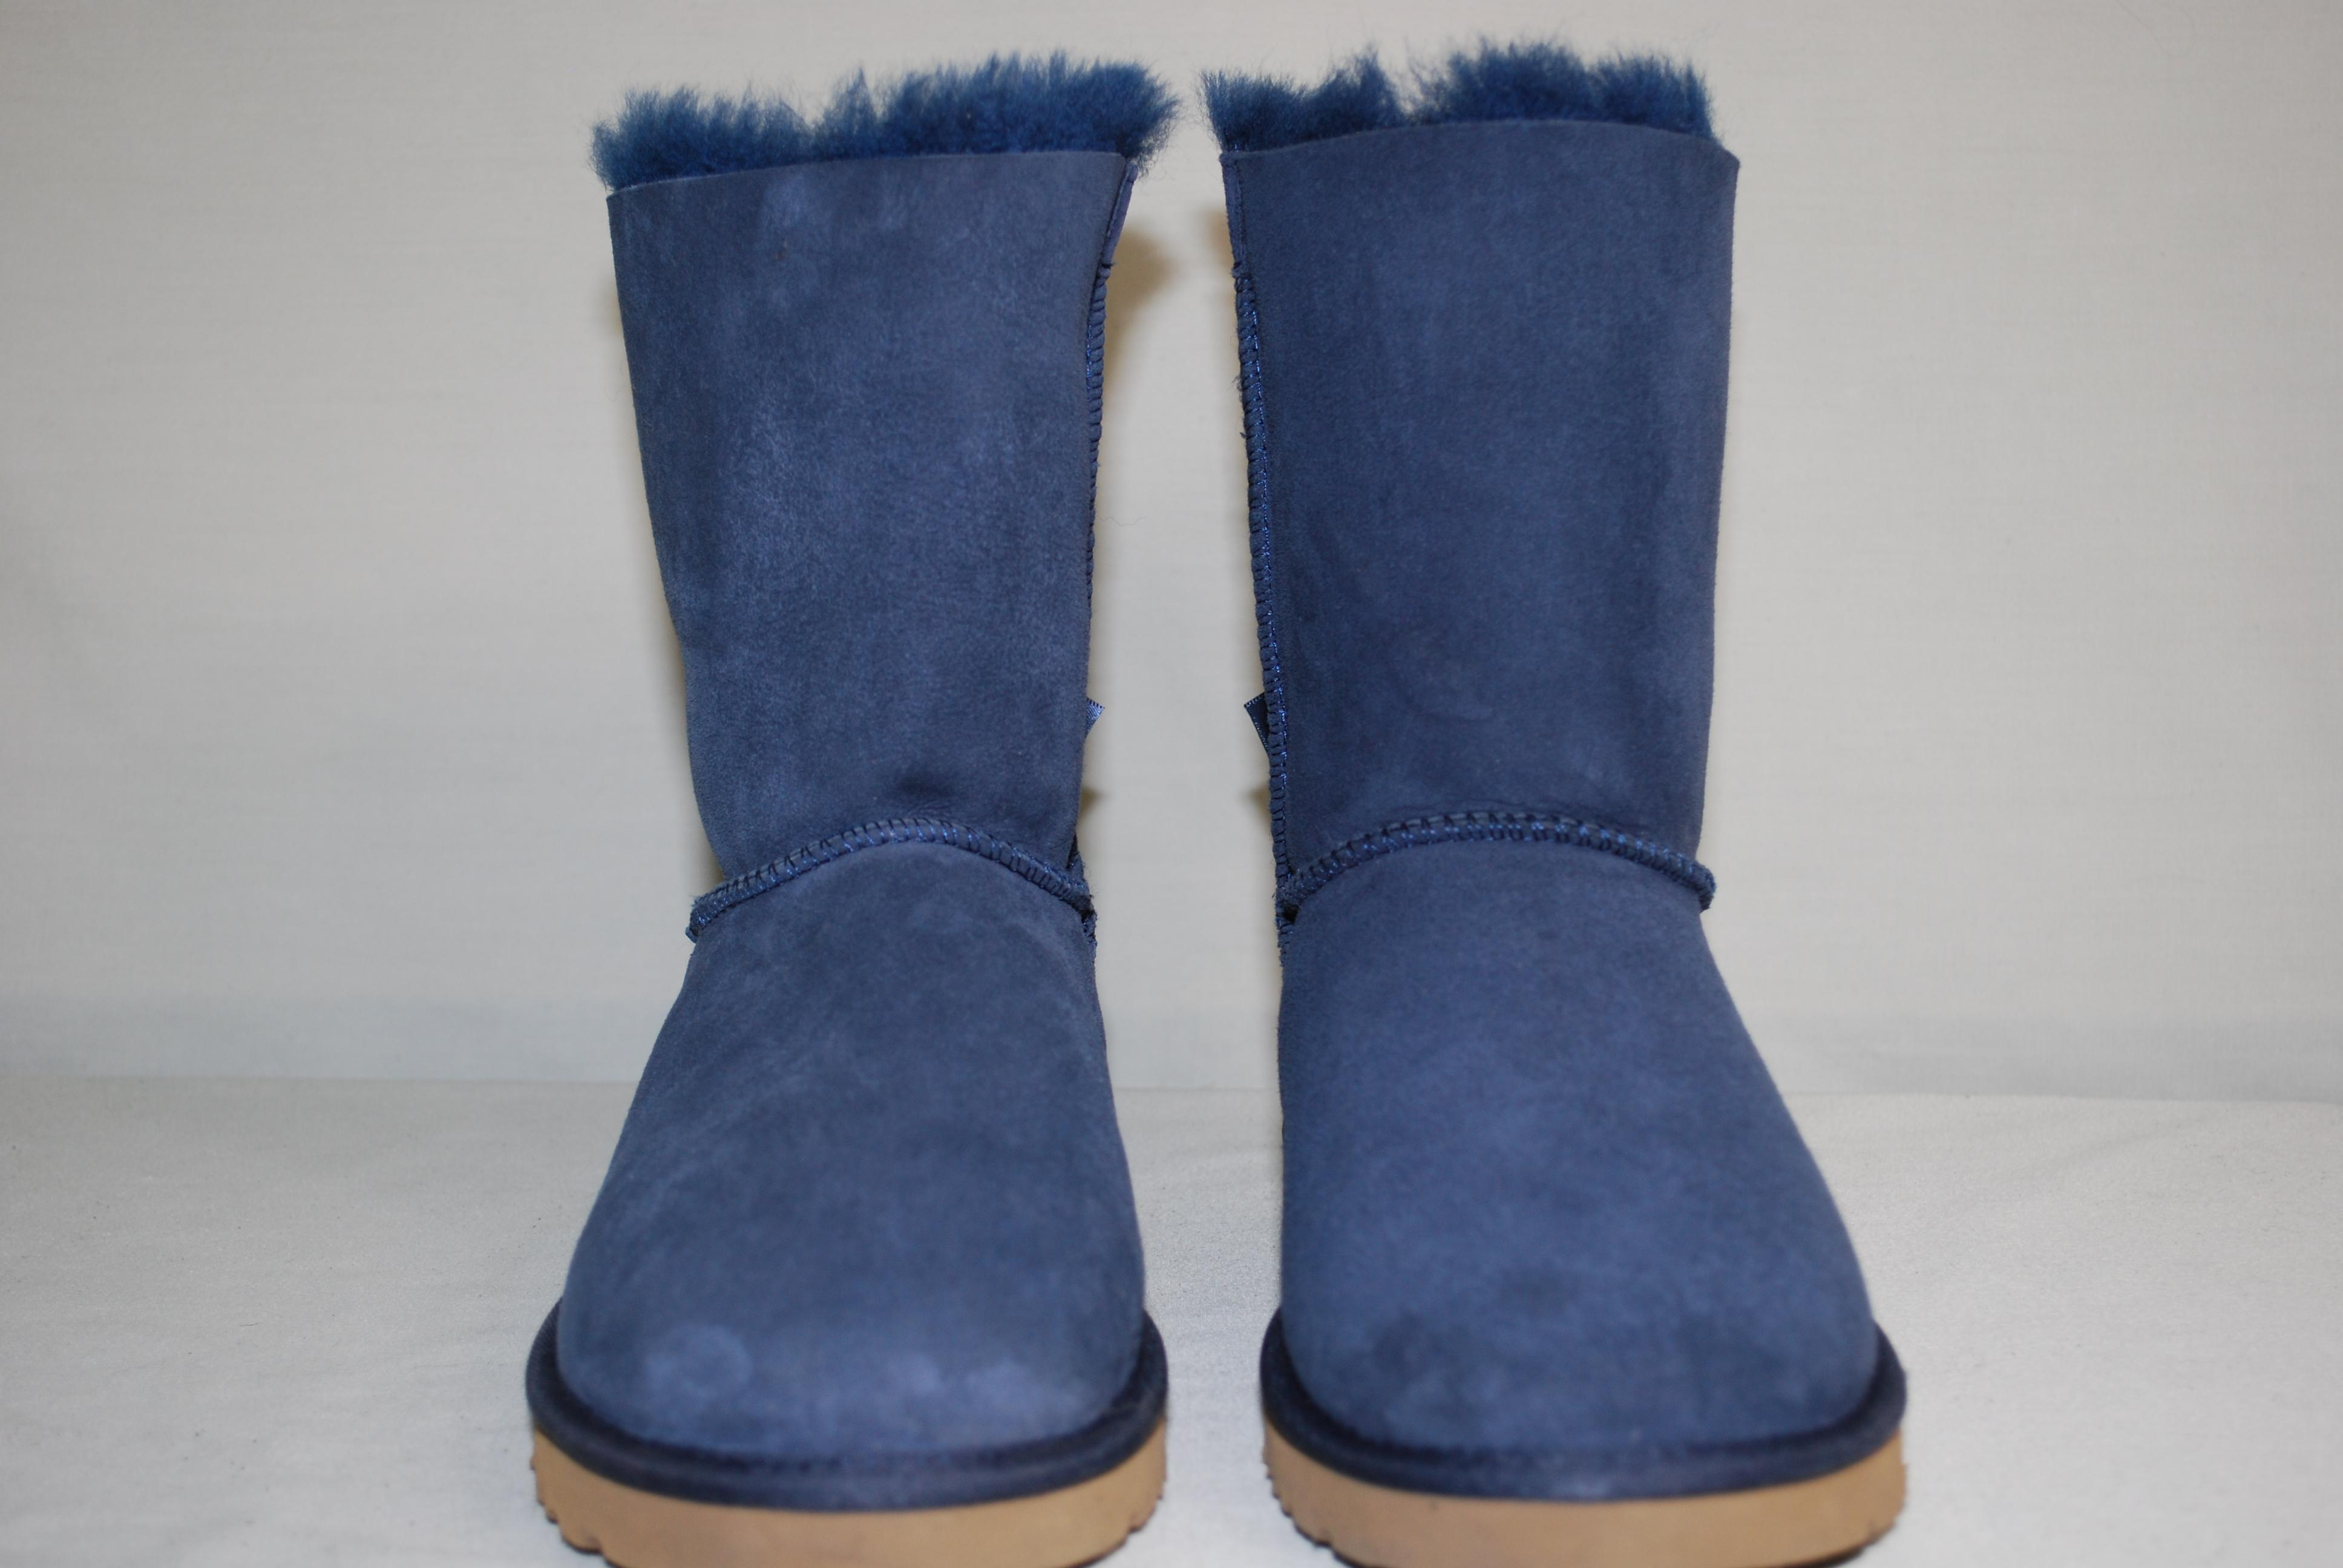 UGG Australia Classic Short Bailey Bow Us 9 Snow-winter Suede/Sheepskin Navy Blue. 12345678910